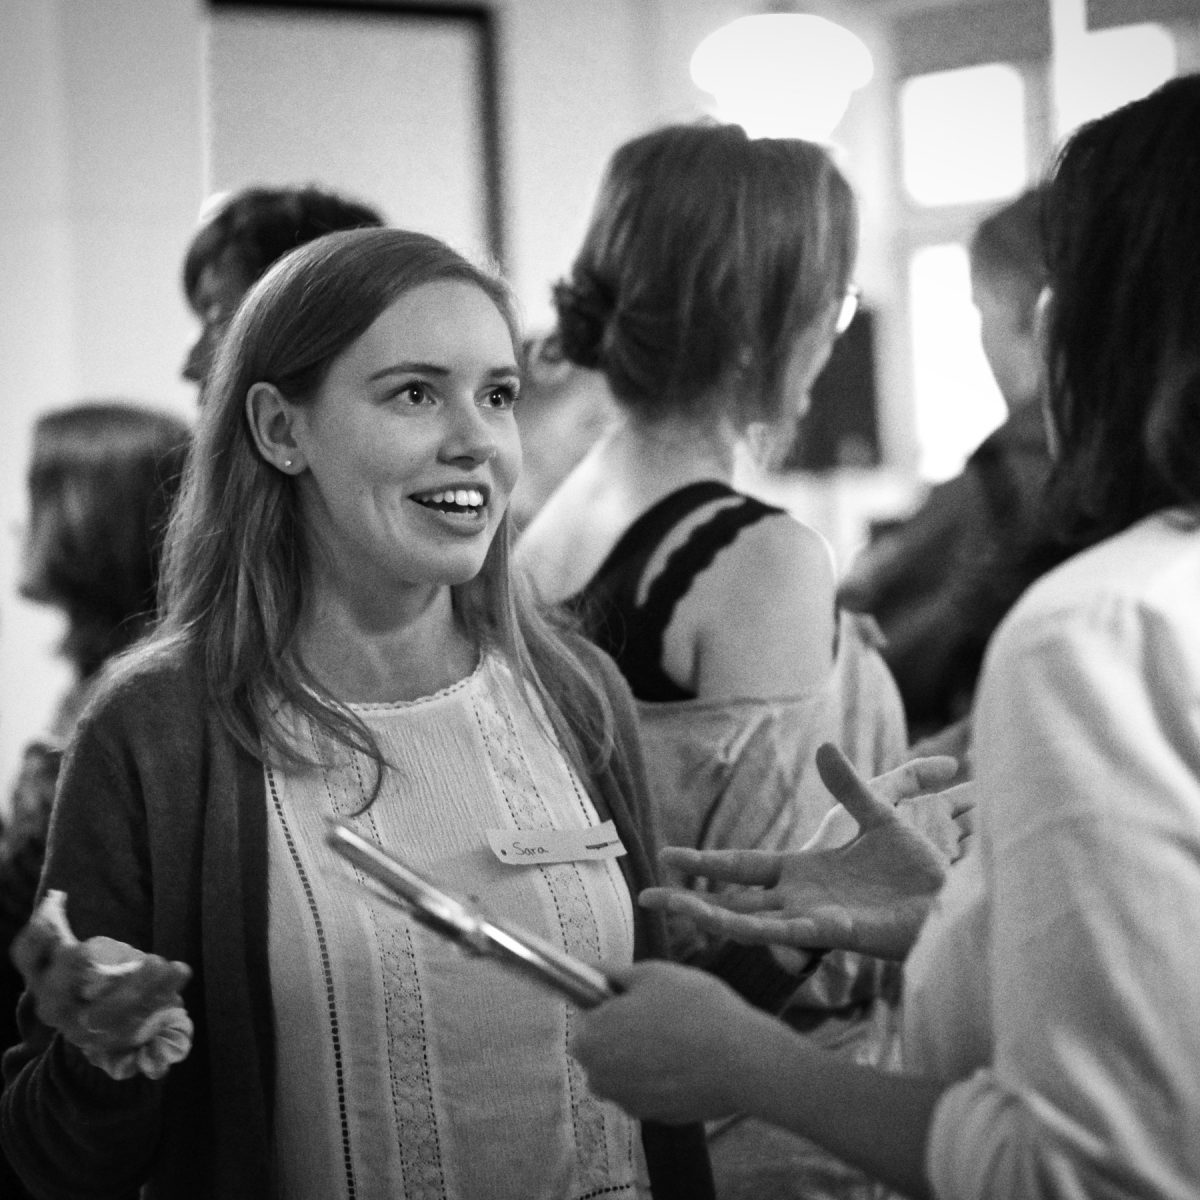 Event photography: Creative Mornings Sep 19 - a great way to start the day